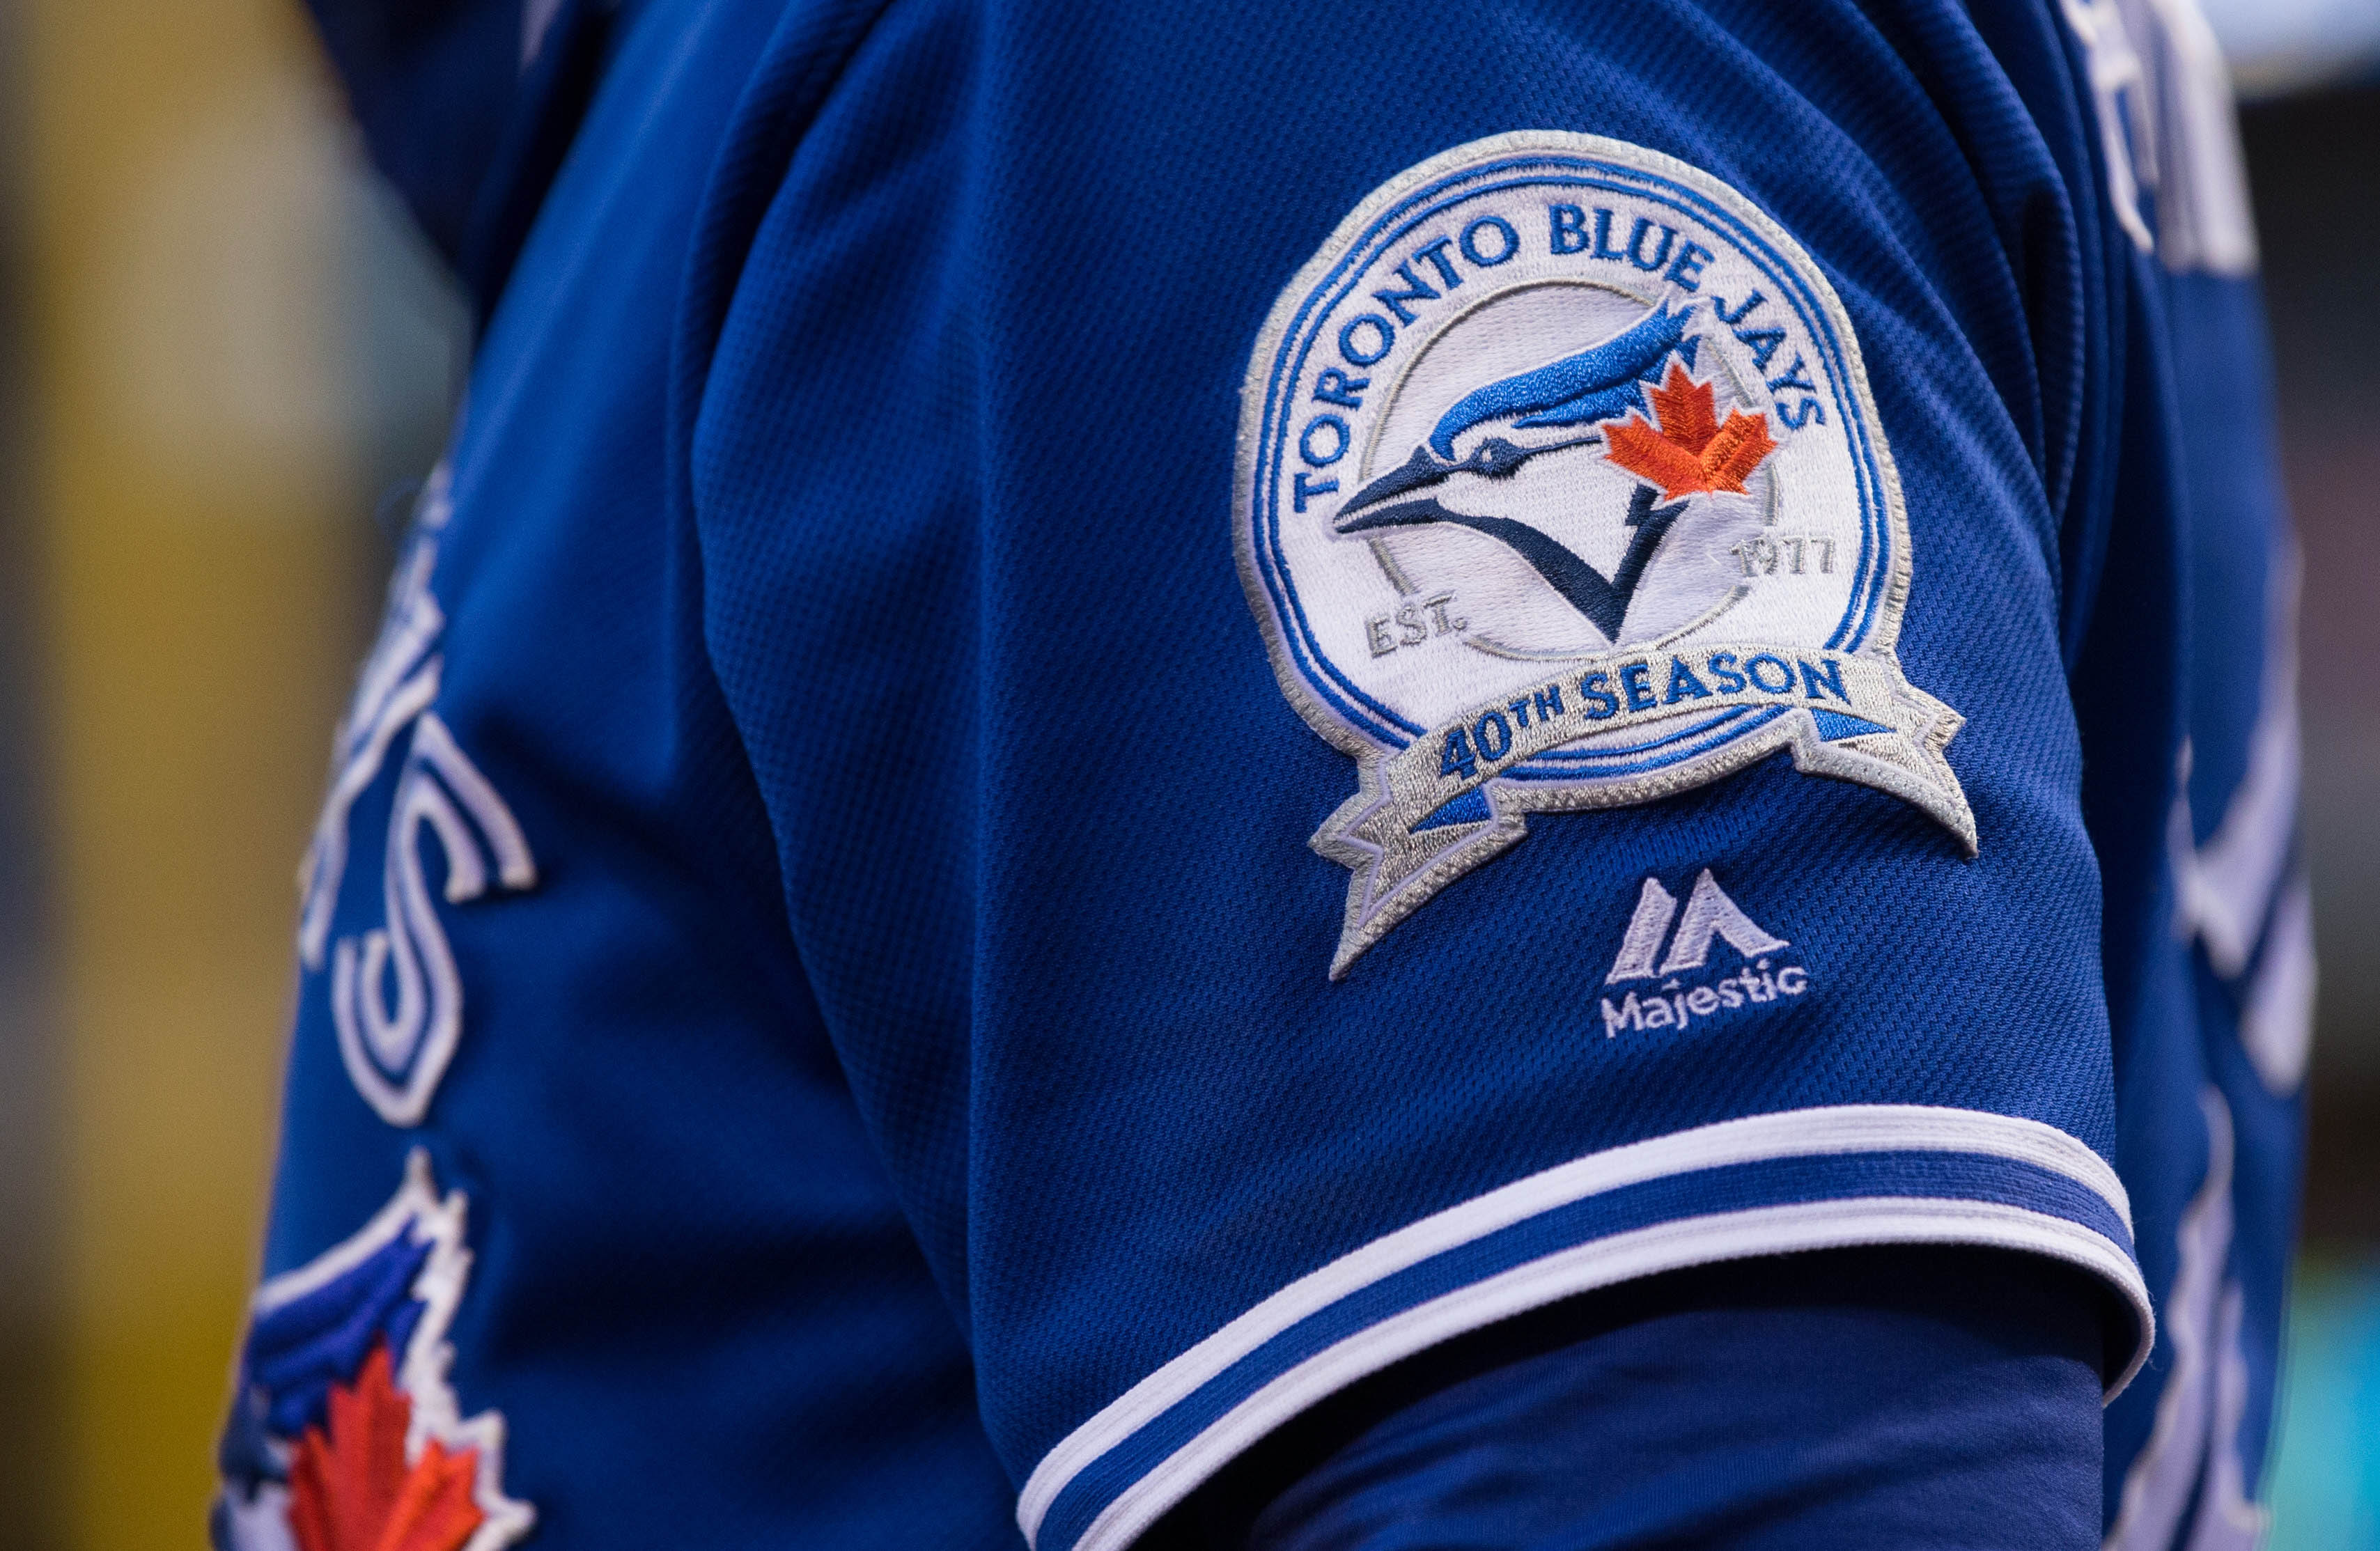 9351312-mlb-toronto-blue-jays-at-philadelphia-phillies